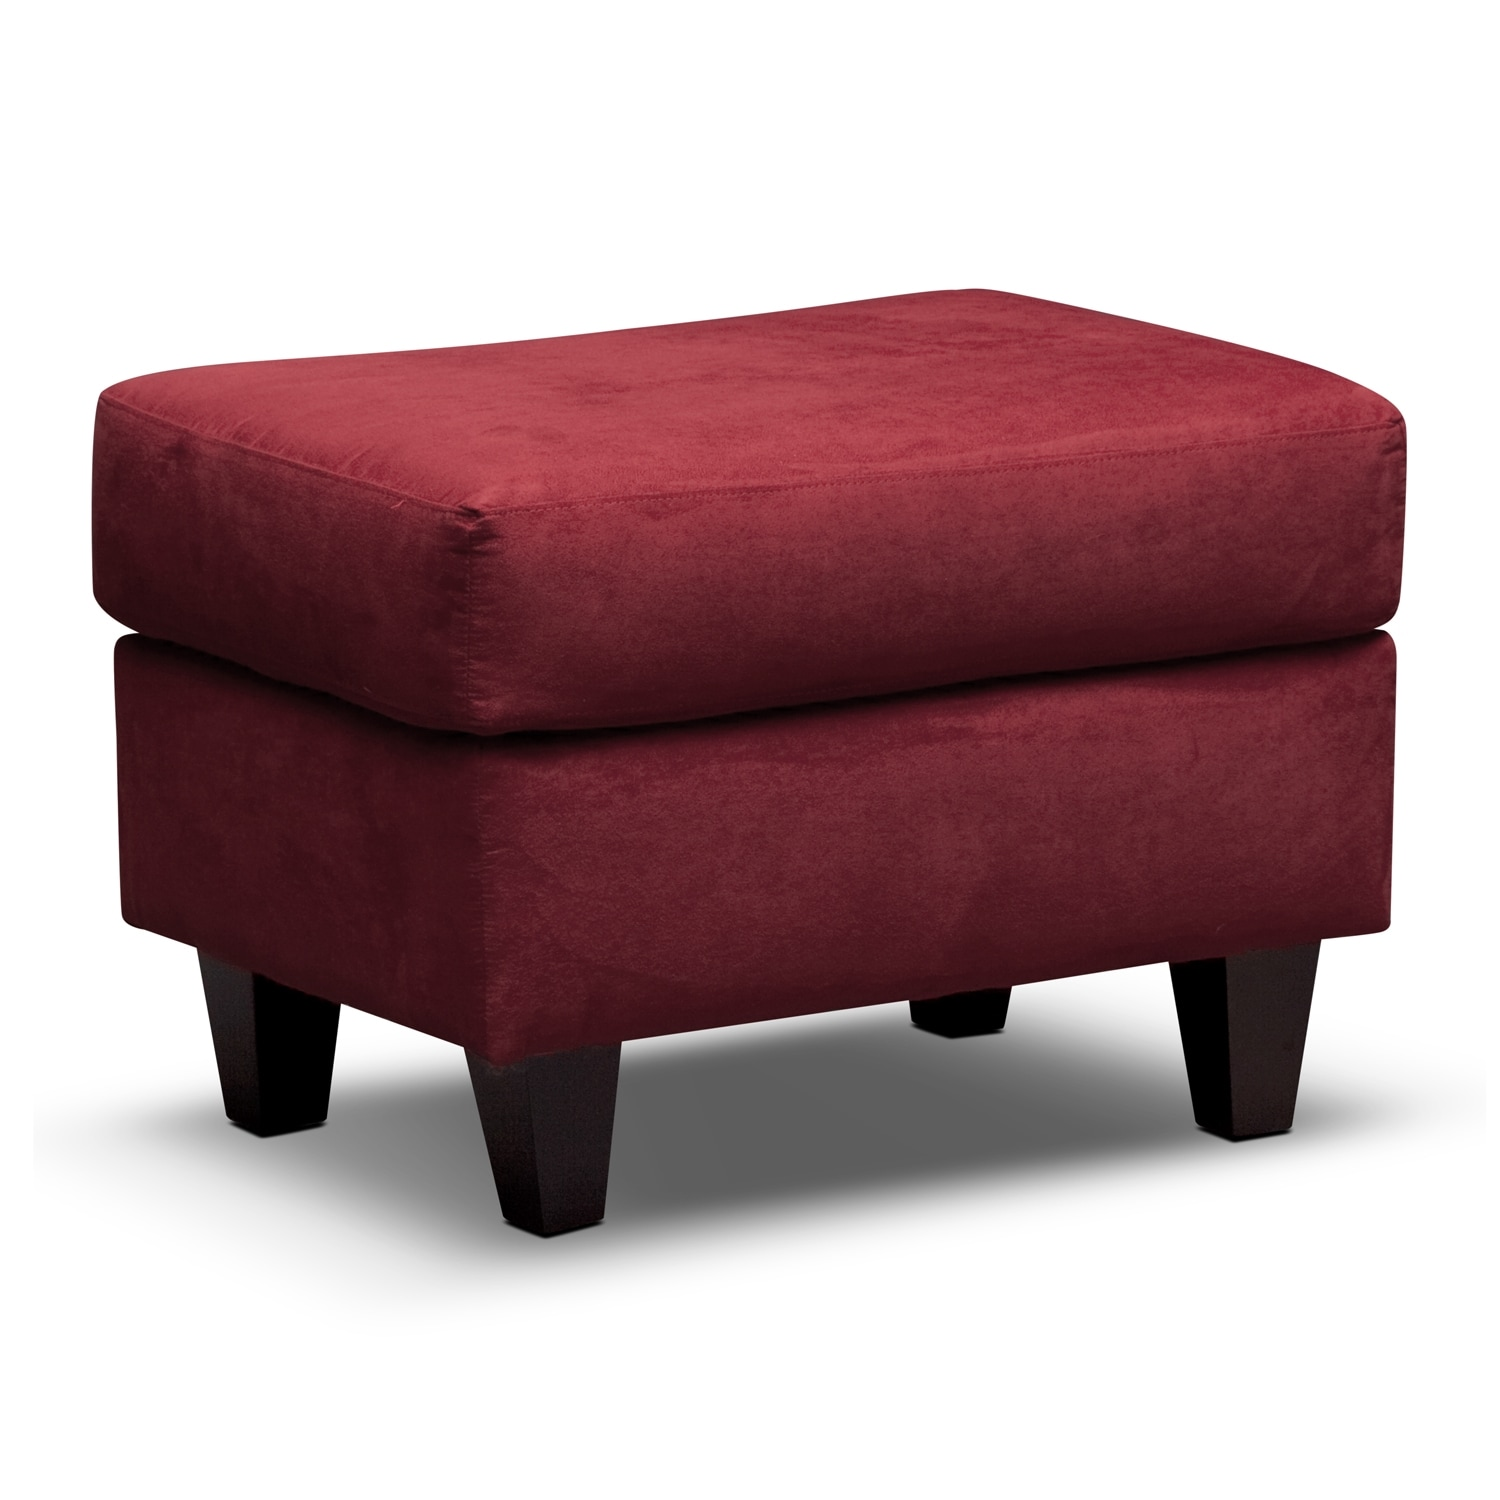 Living Room Furniture - West Village Ottoman - Red